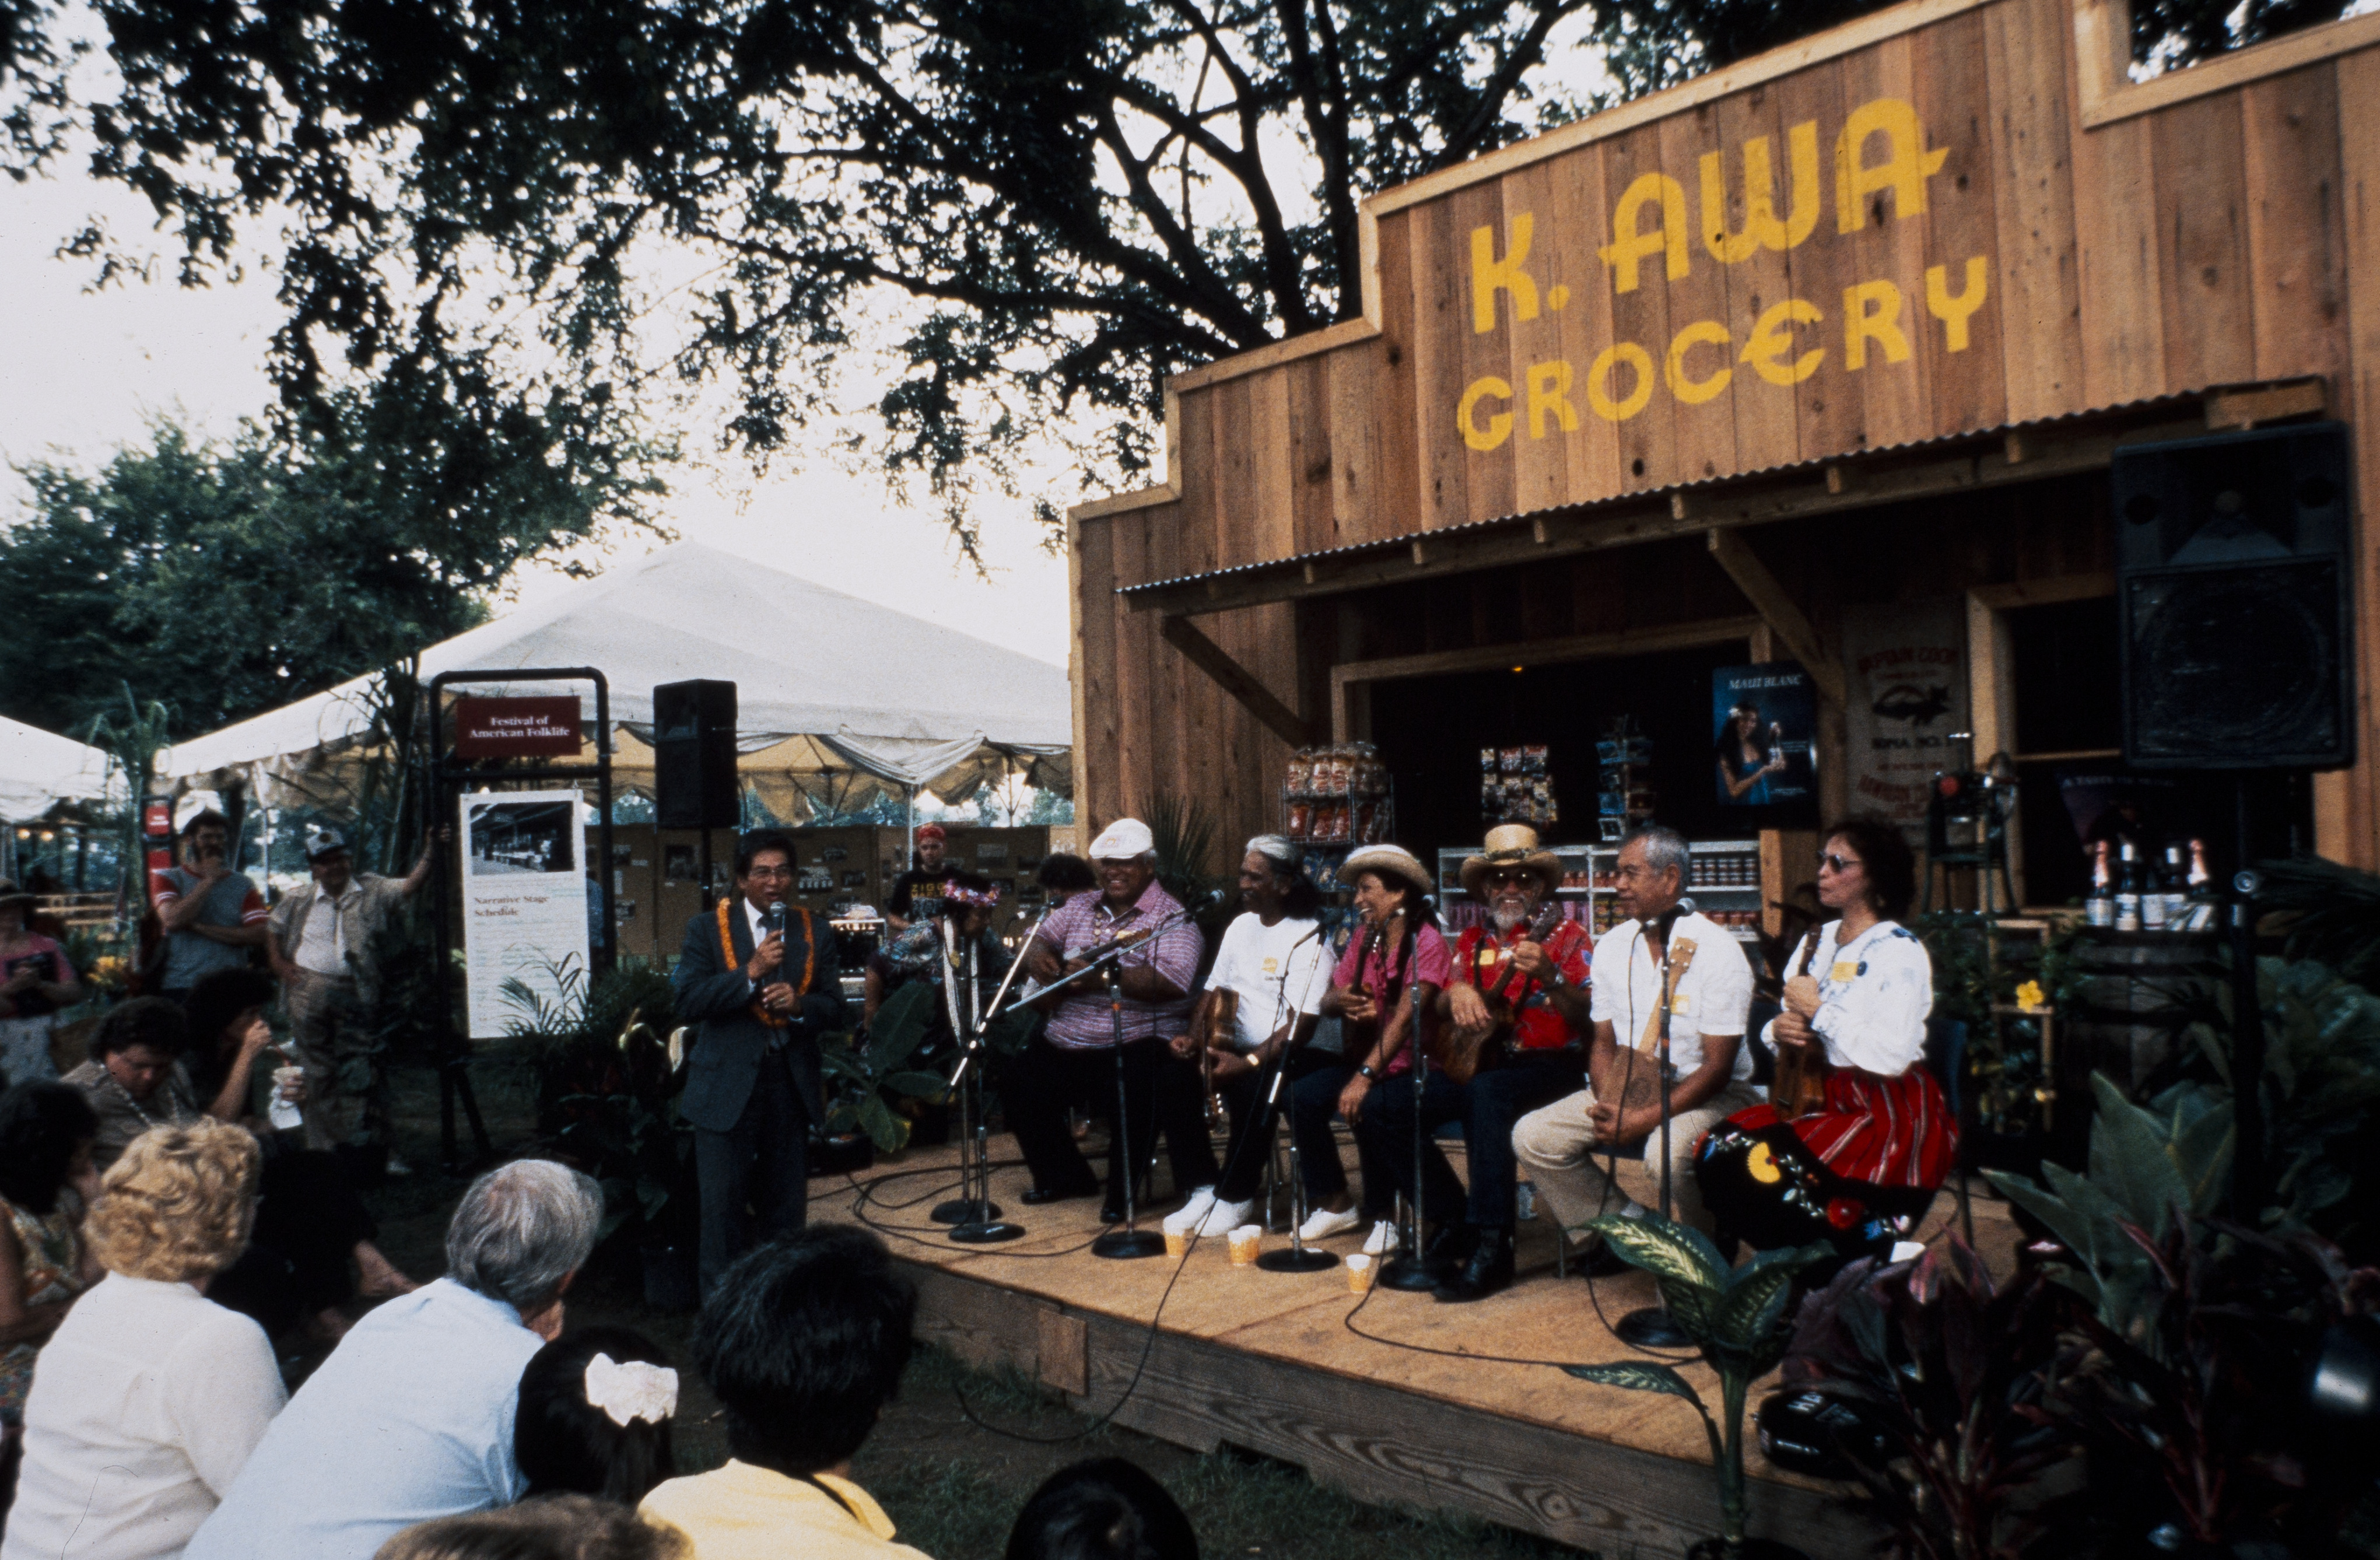 Six festival participants on wooden stage holding ukuleles with visitors looking on.